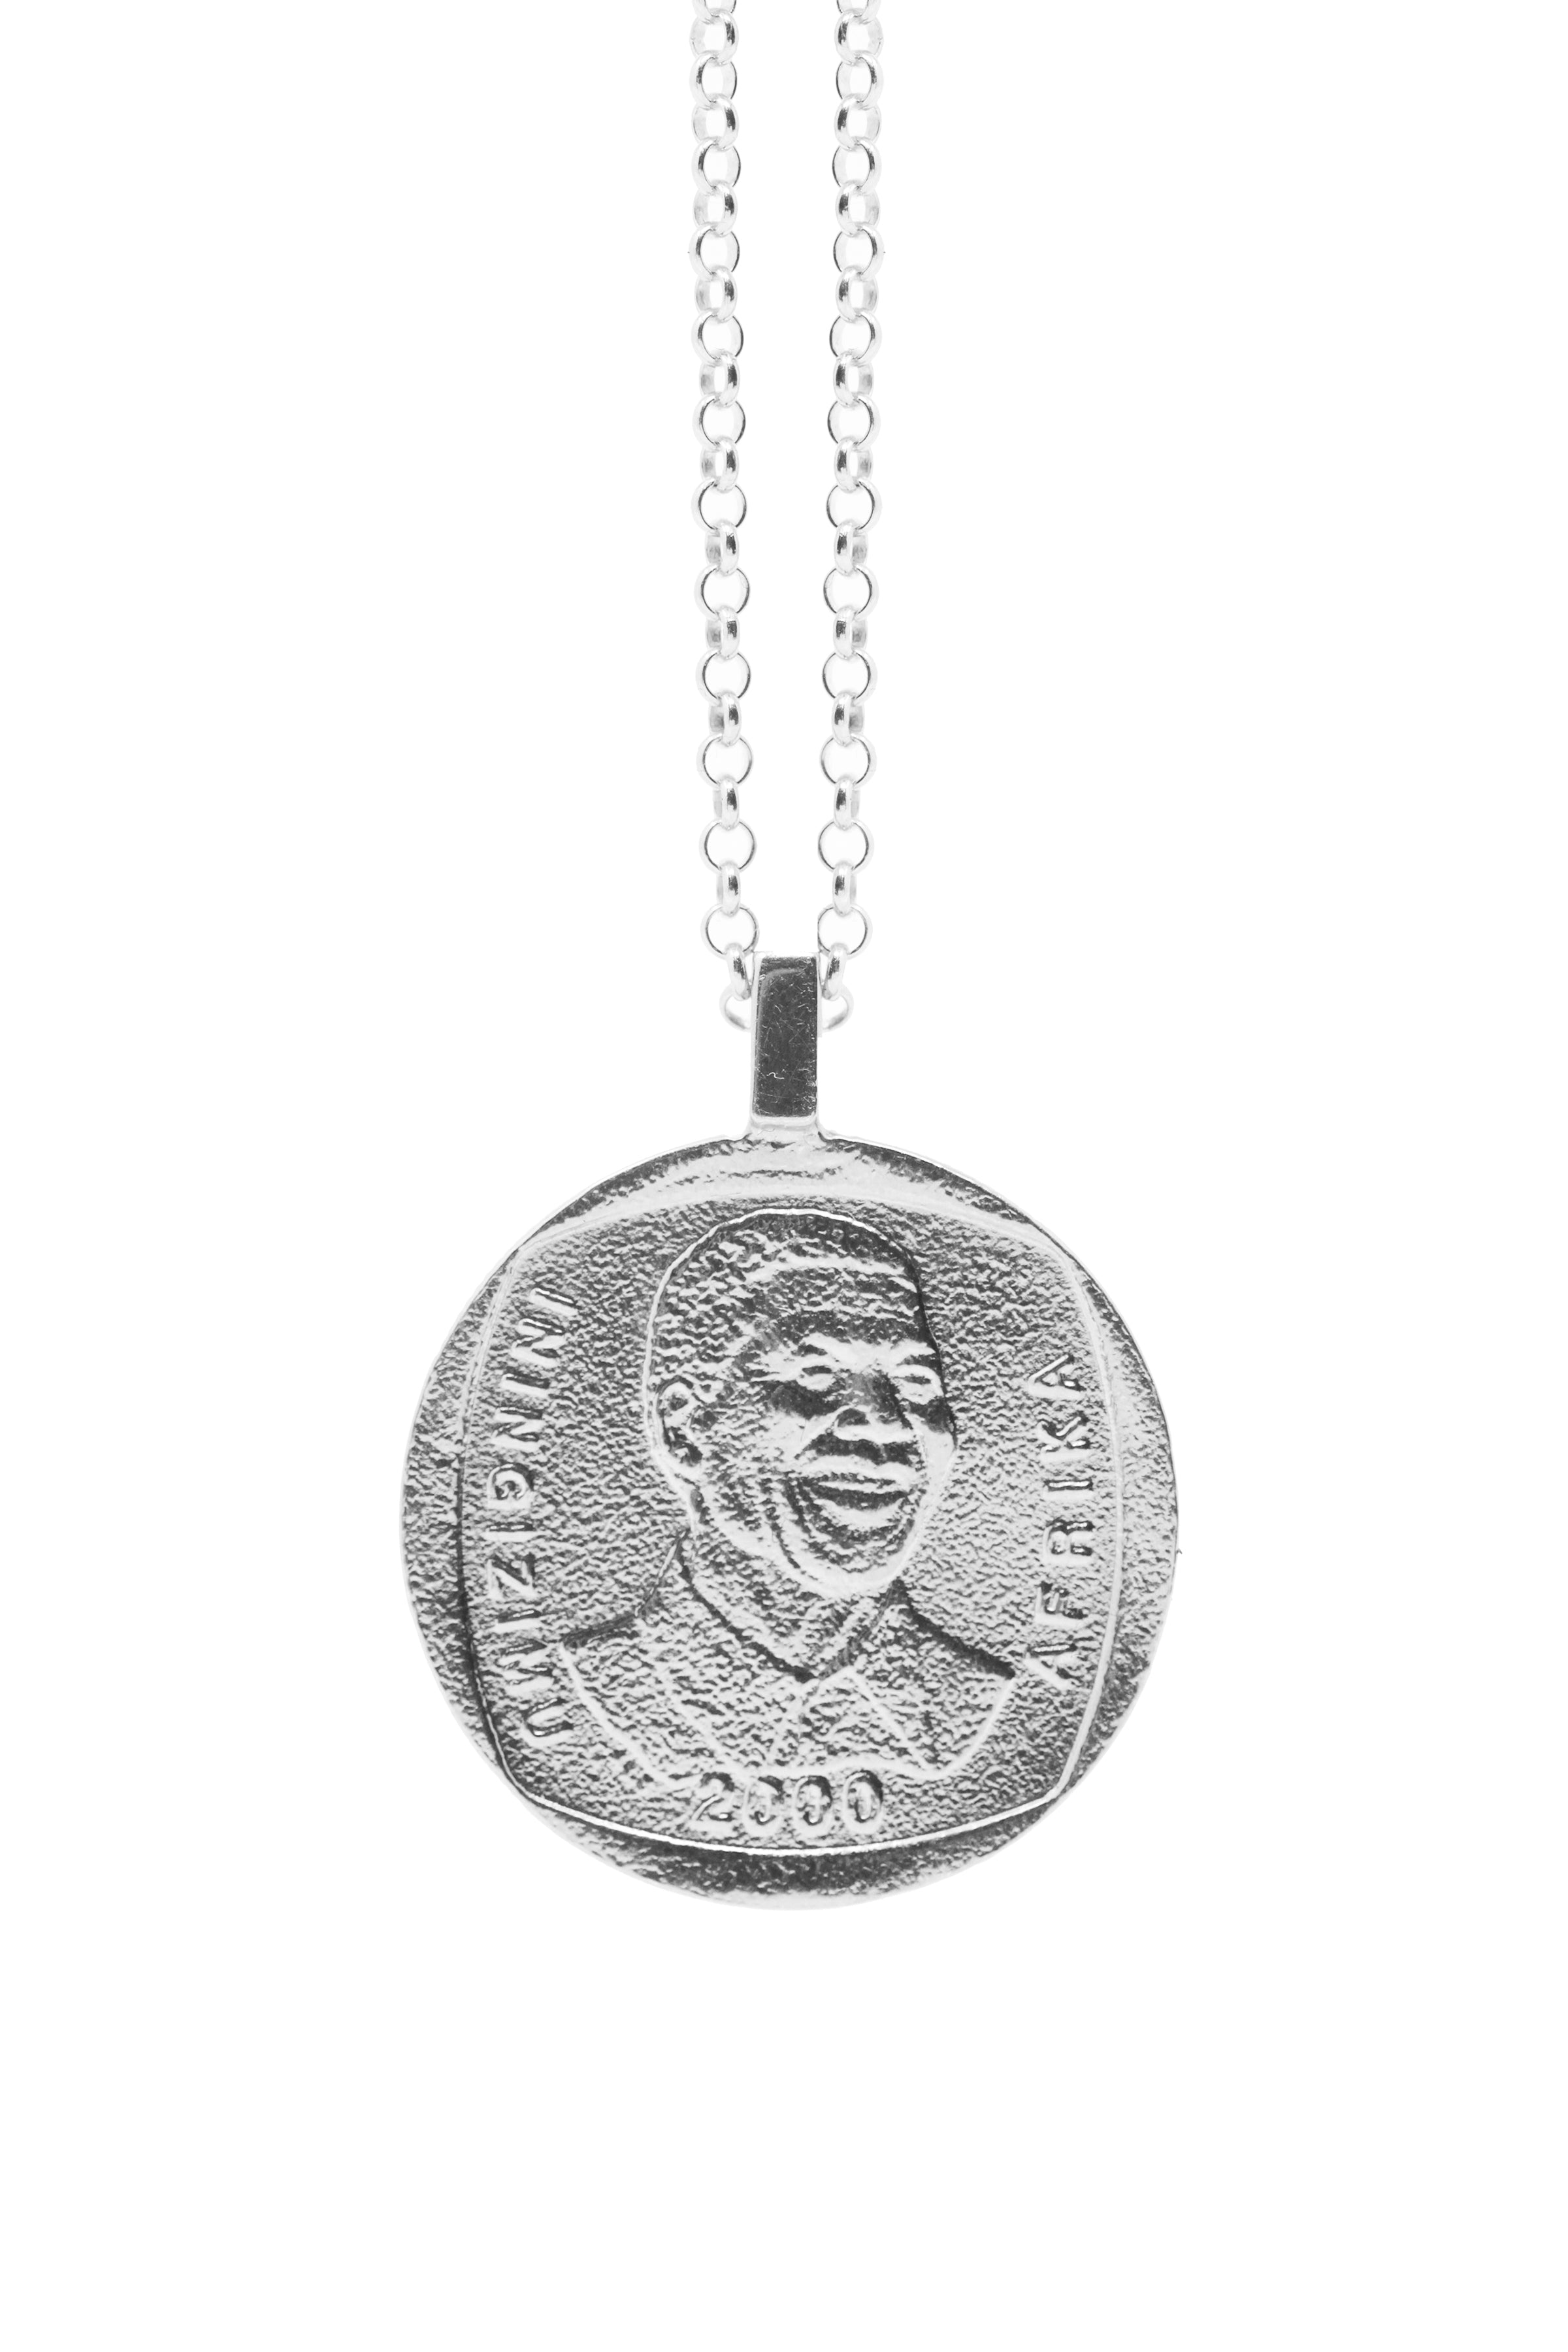 THE SOUTH Africa Mandela Necklace in Silver